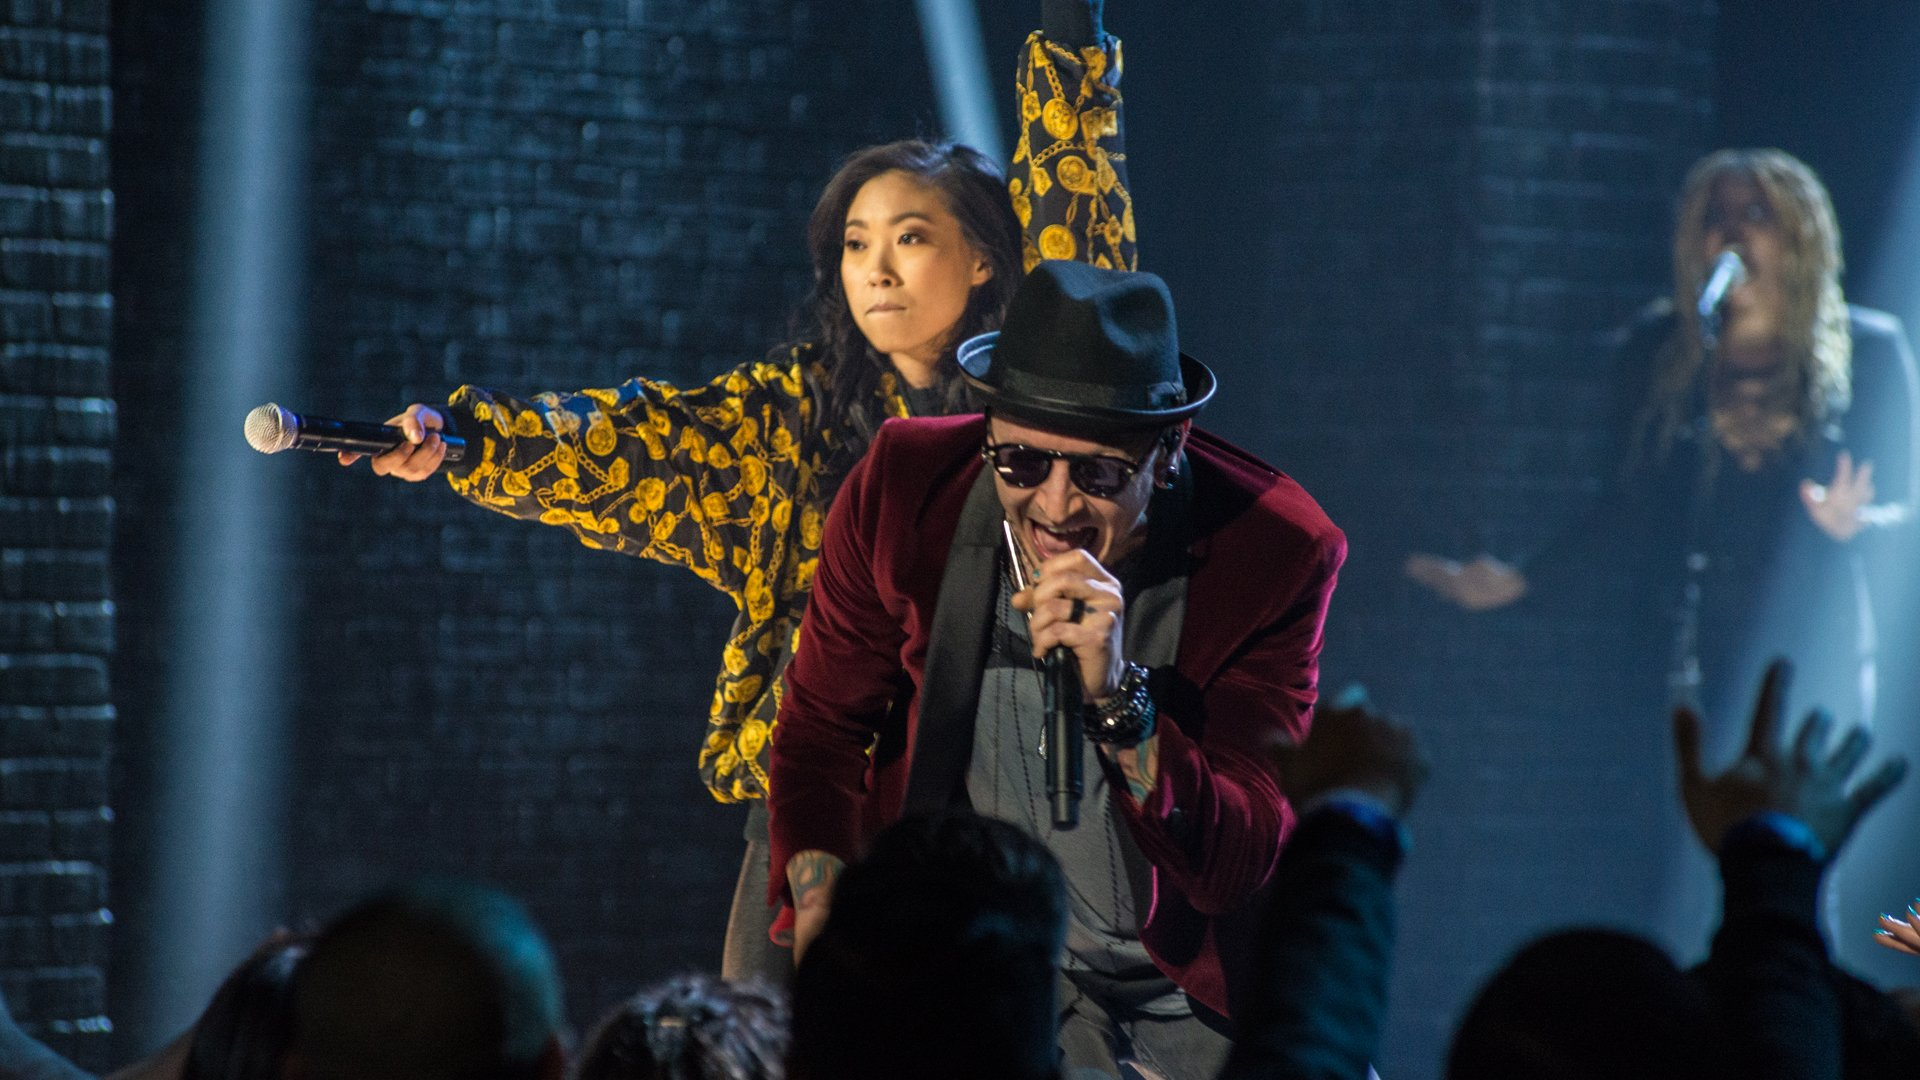 Jesse Tyler Ferguson Awkwafina Sam Richardsonseason Jesse Tyler Ferguson Sings Chandelier Awkwafina And Chester Bennington Rock Out To In The